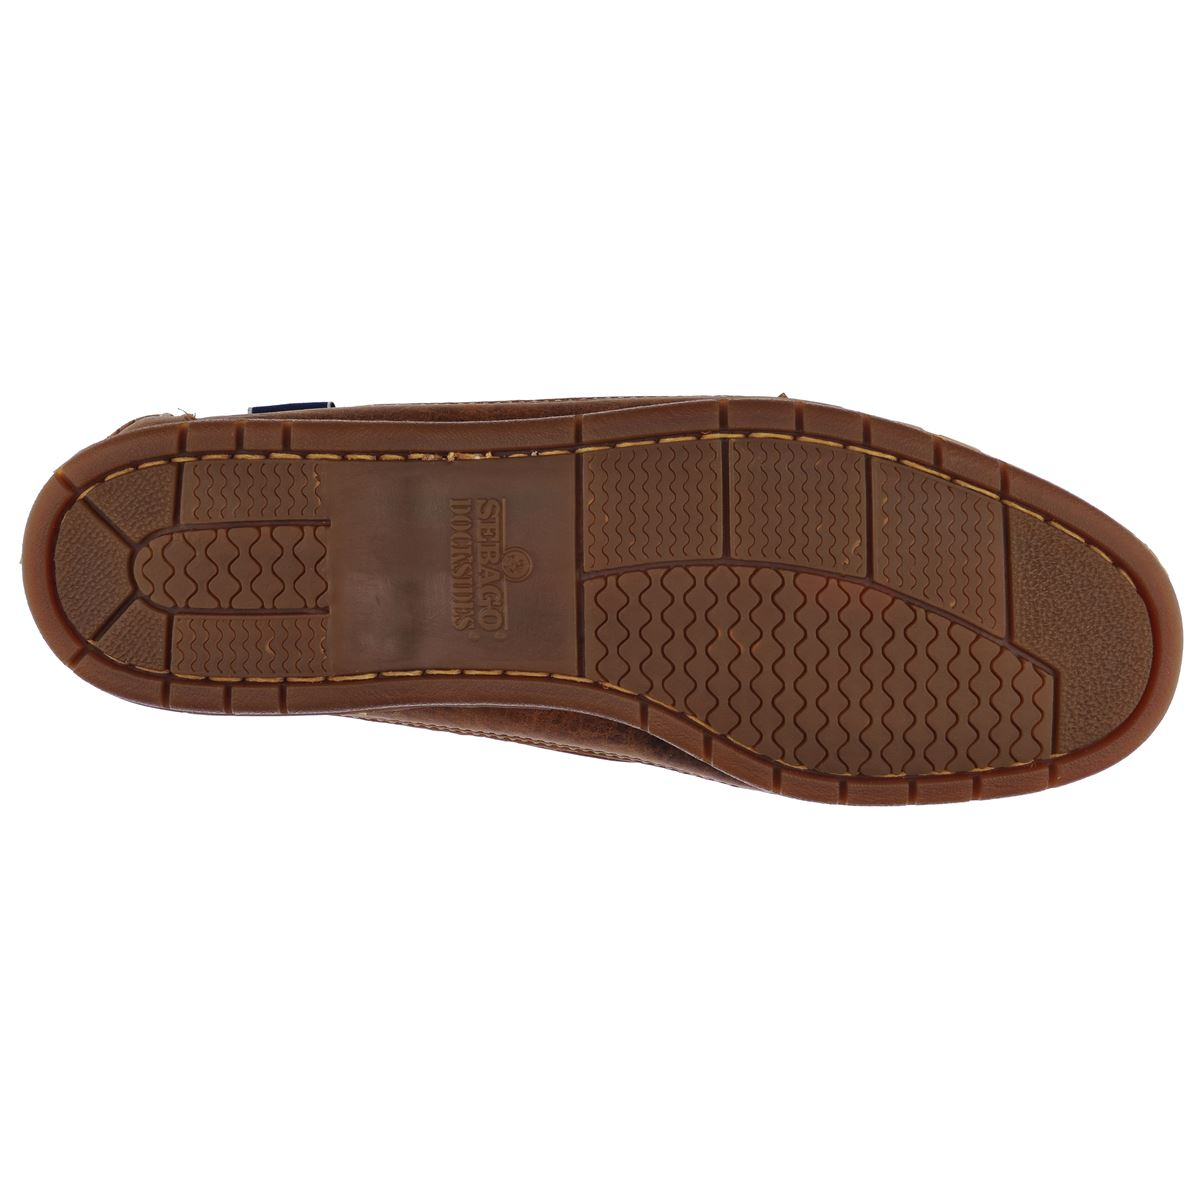 SCHOONER CRAZY HORSE - BROWN TAN